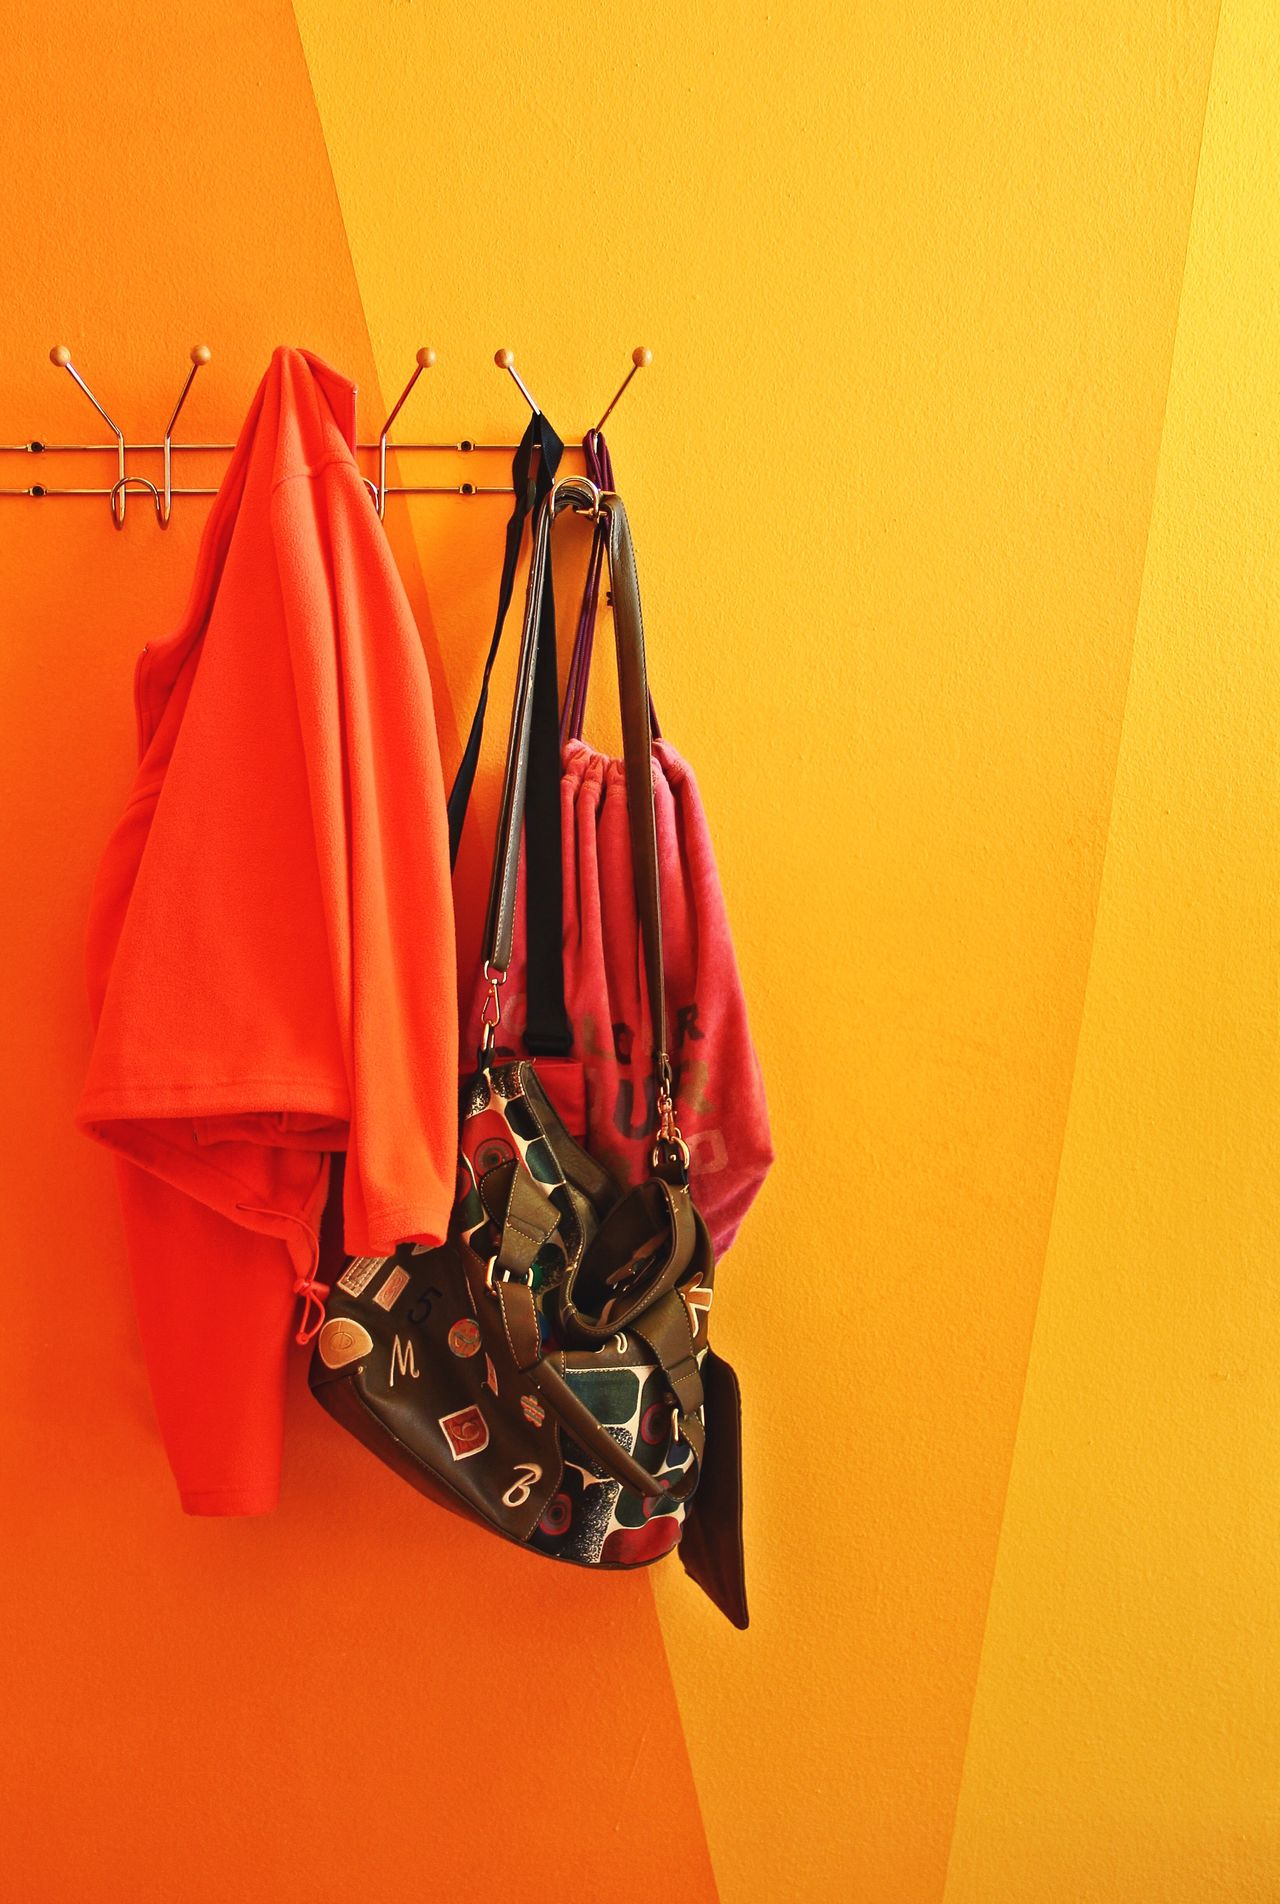 Clothes and shoulder bag hanging on yellow wall at home